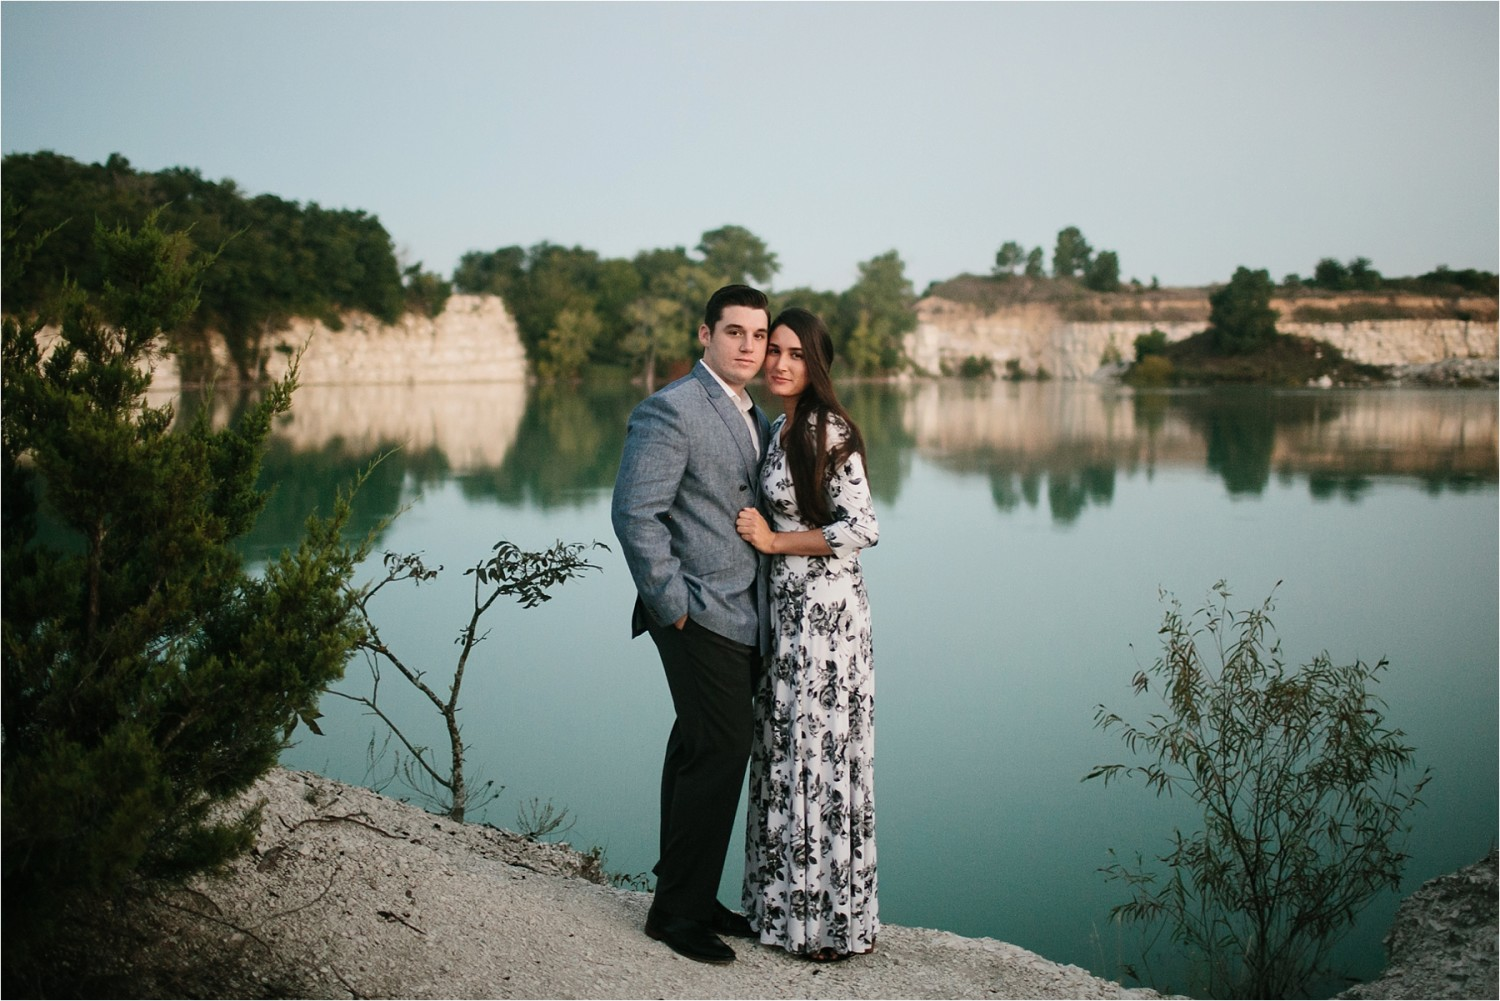 an-intimate-sunrise-session-by-north-texas-wedding-photographer-rachel-meagan-photography-_-02